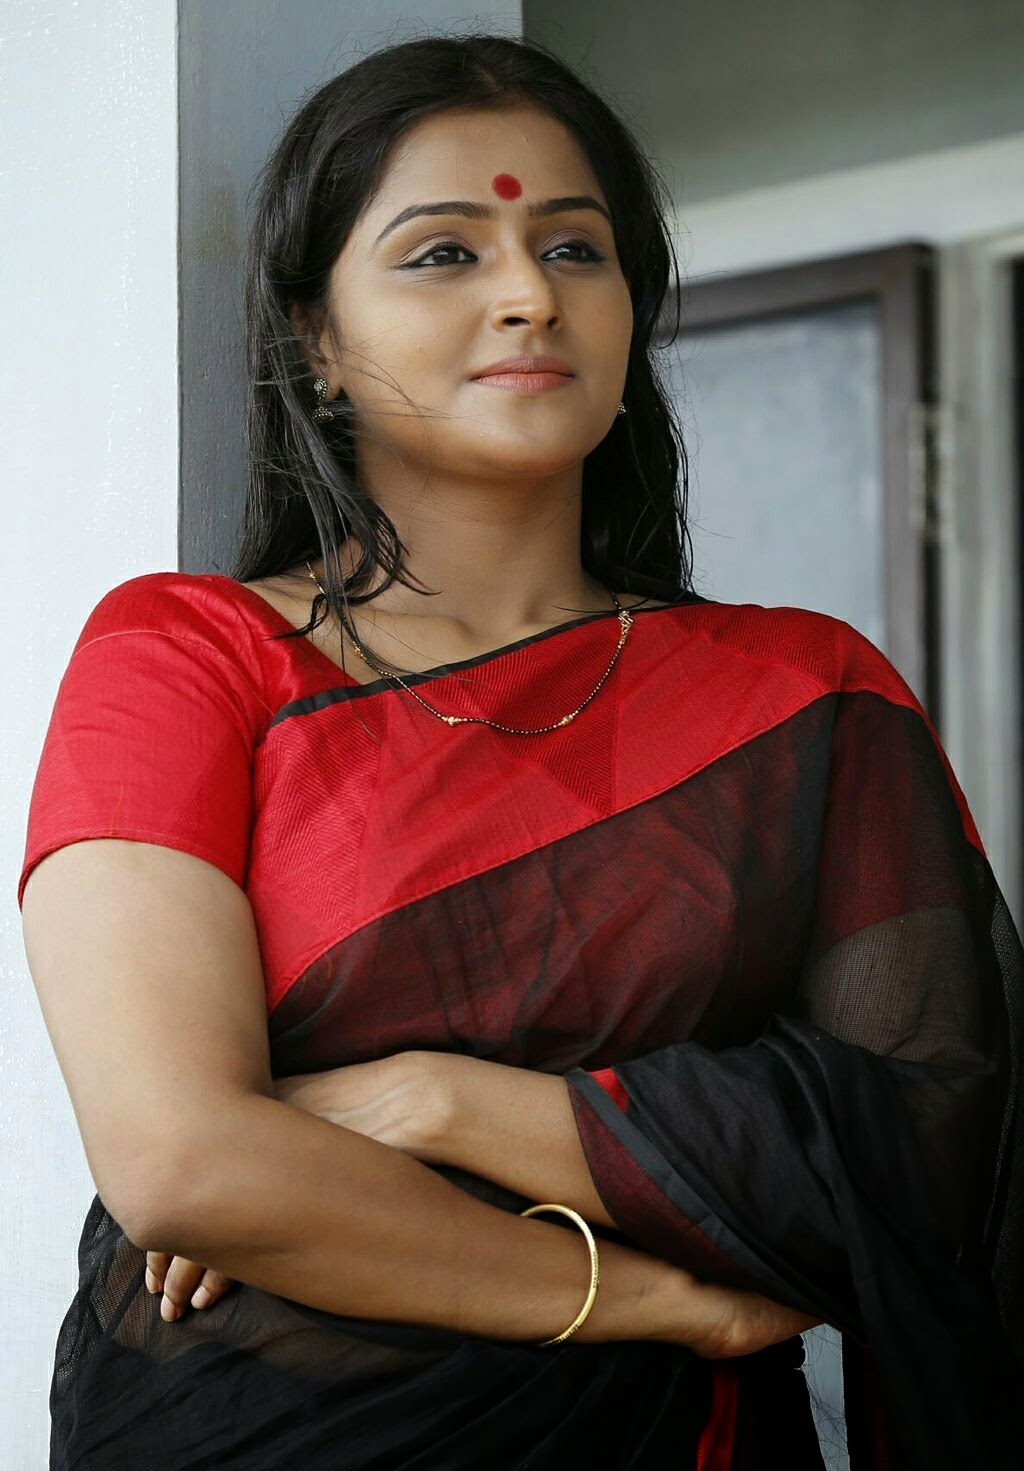 hq pics n galleries !!: ramya nambeesan latest photo gallery in saree